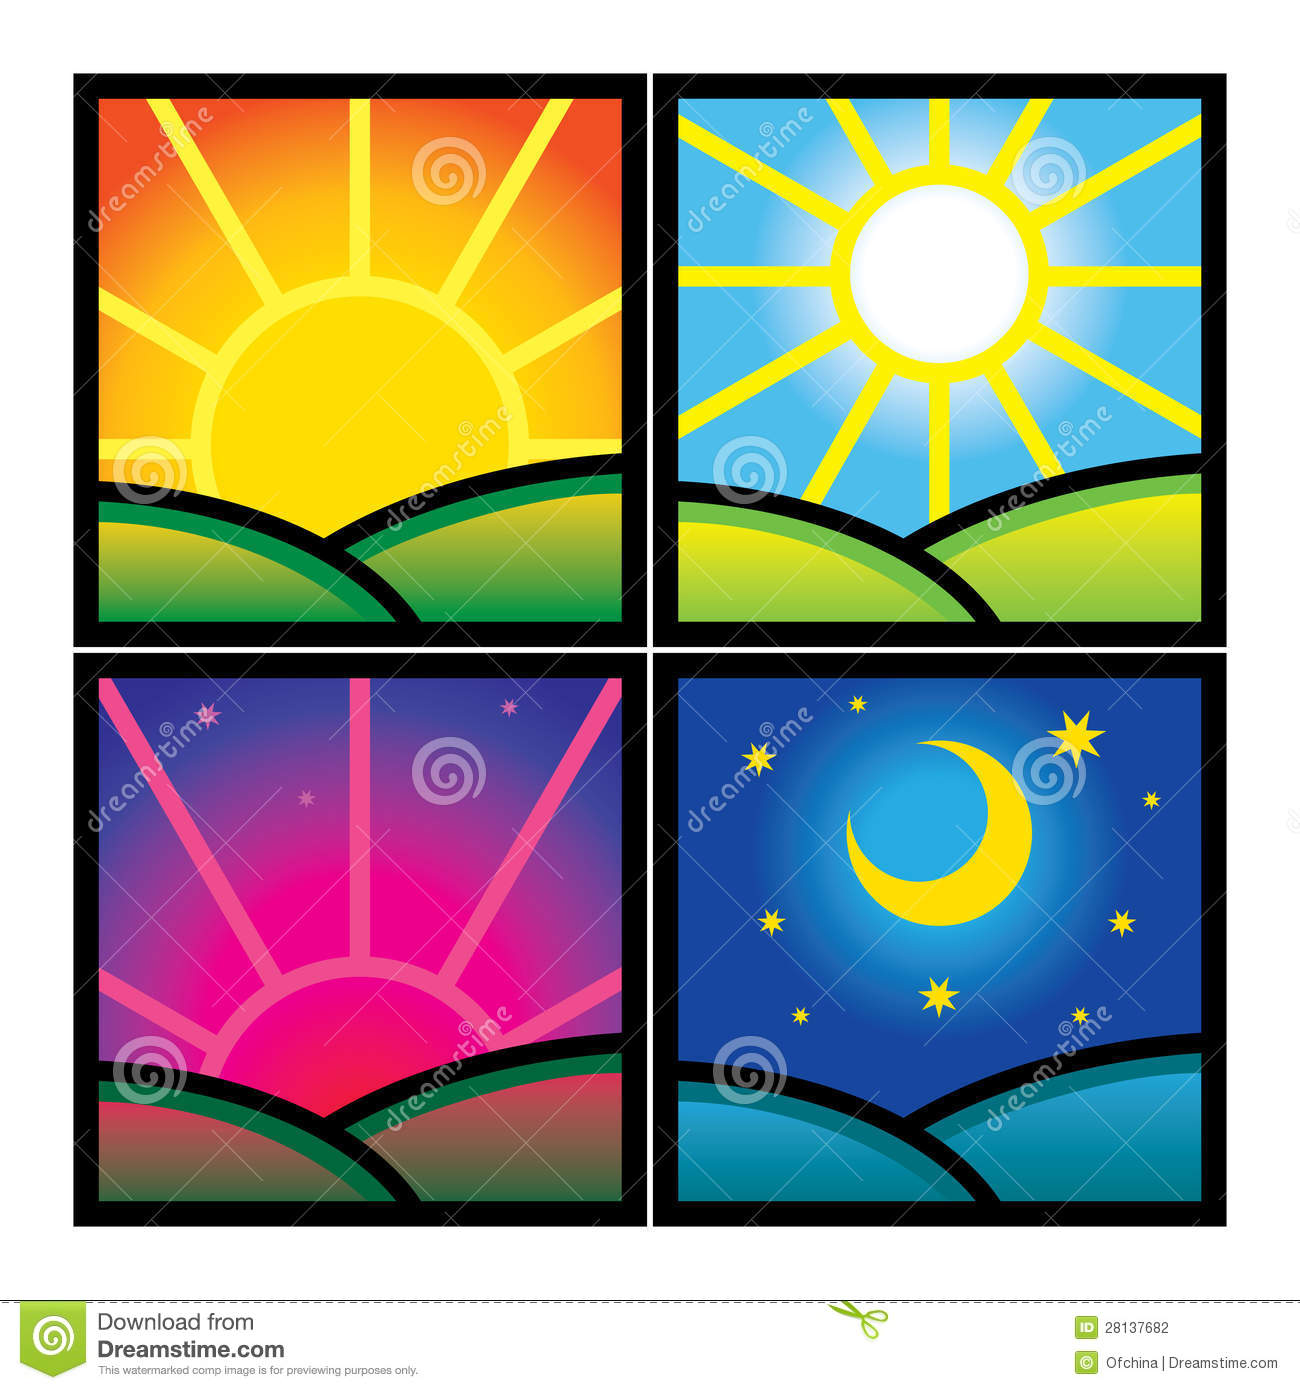 Library Of Morning Afternoon Evening Image Royalty Free